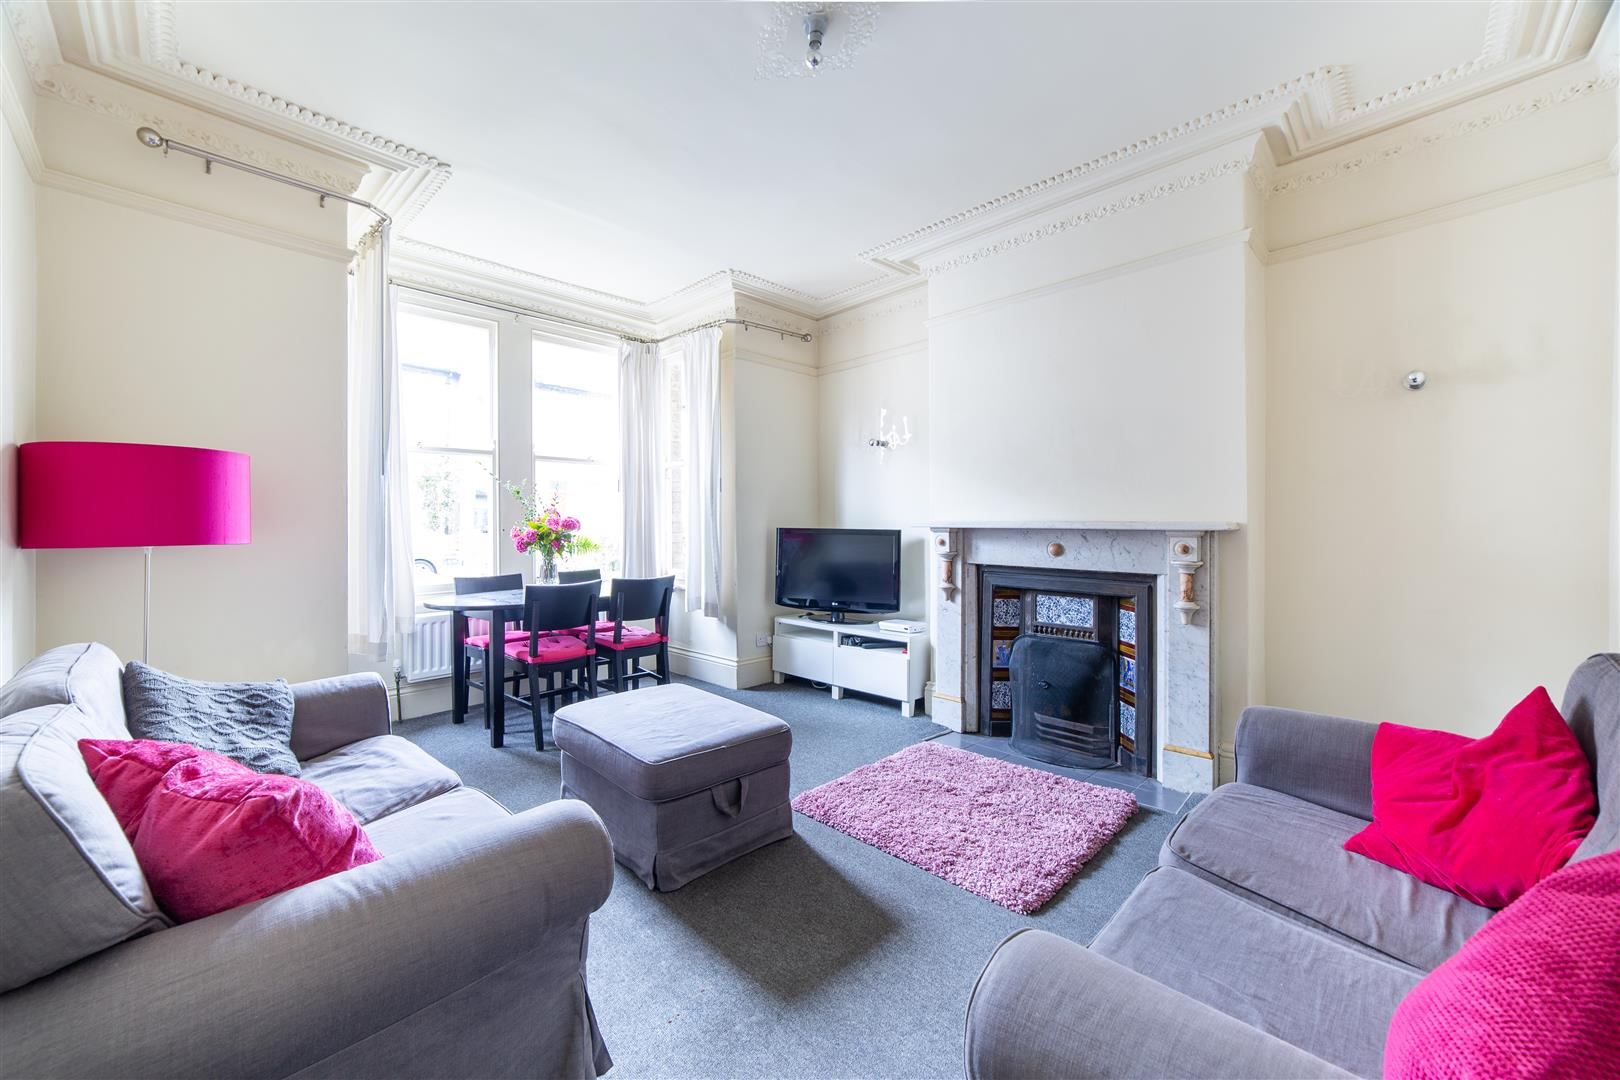 4 bed terraced house to rent in Newcastle Upon Tyne, NE6 5NU - Property Image 1